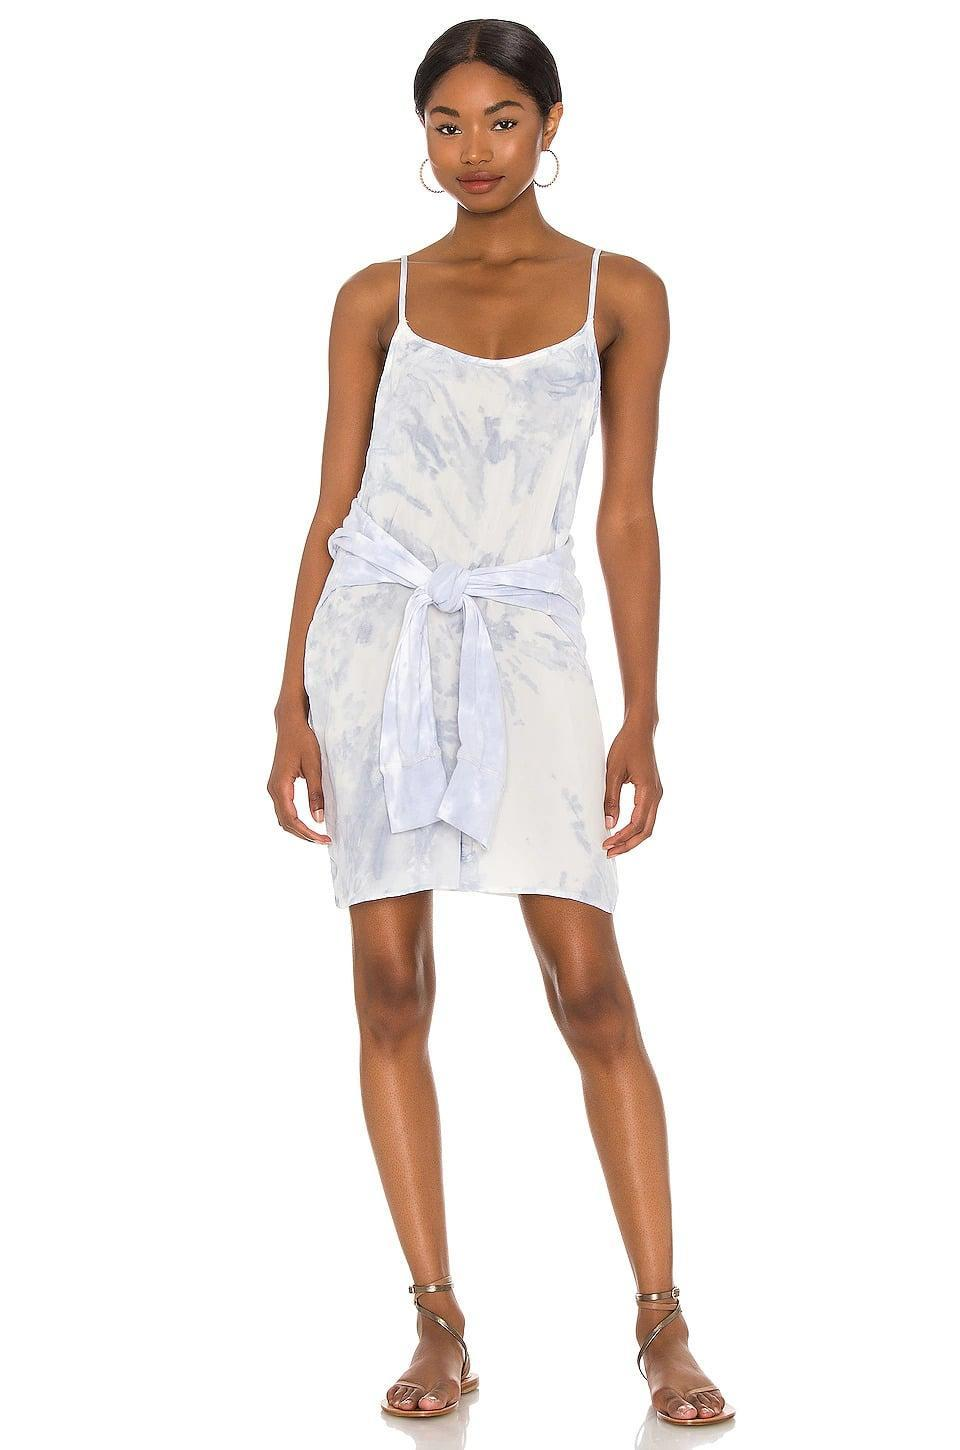 <p>Keep it casual with this <span>n:philanthropy x REVOLVE Willa Dress in Morning Dew Tie Dye</span> ($50, originally $208). Pair it with a jean jacket and sneakers for a stylish daytime look. </p>